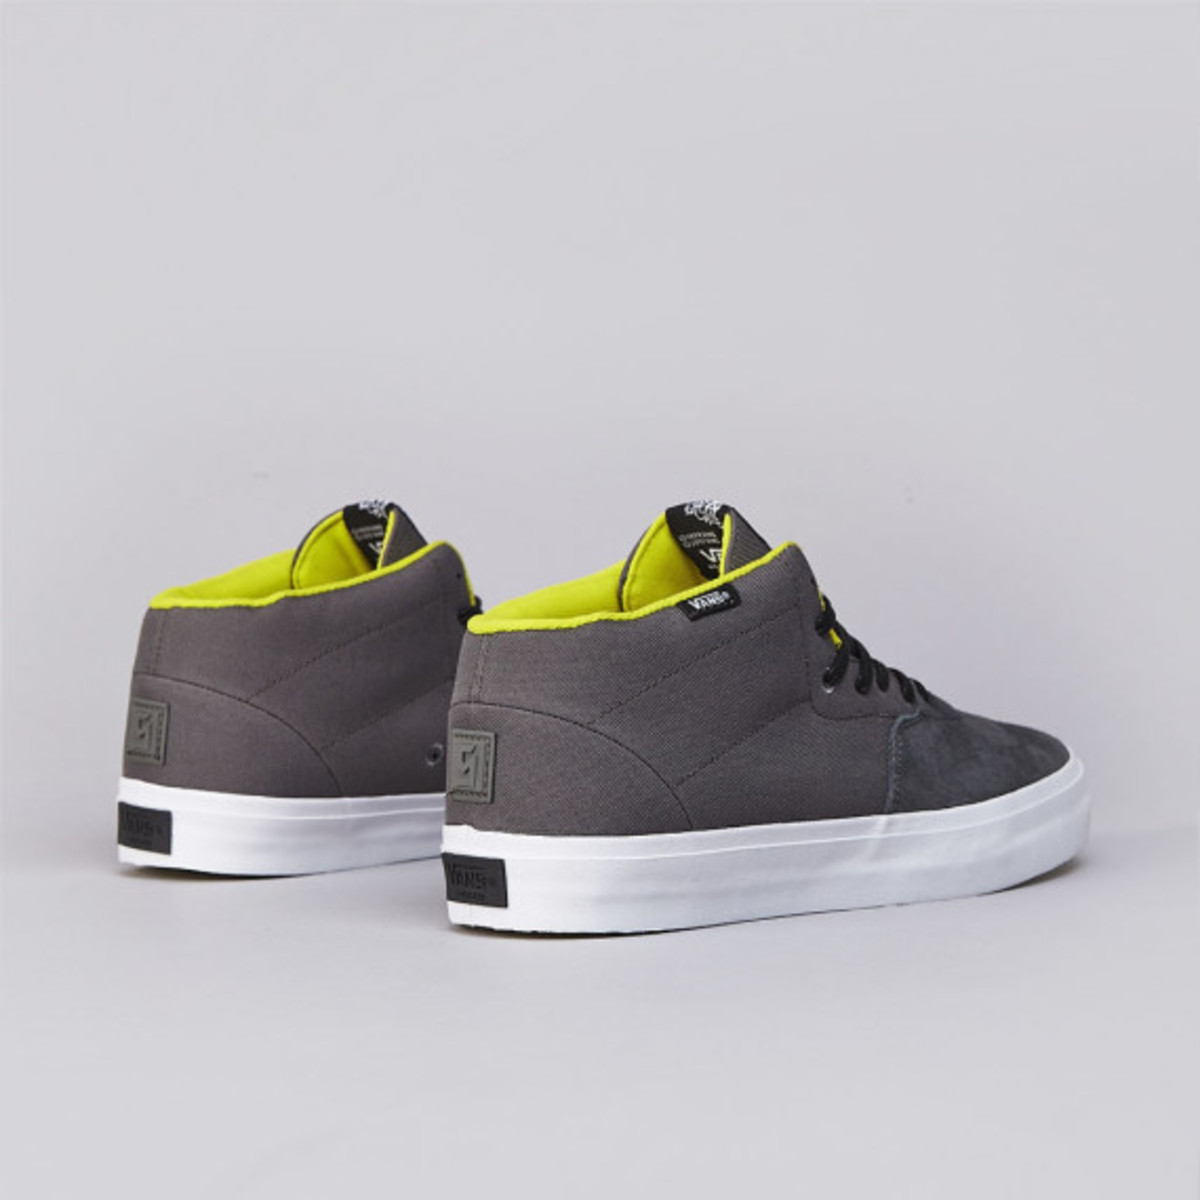 "VANS Syndicate Cab Lite ""S"" - June 2013 Releases - 3"